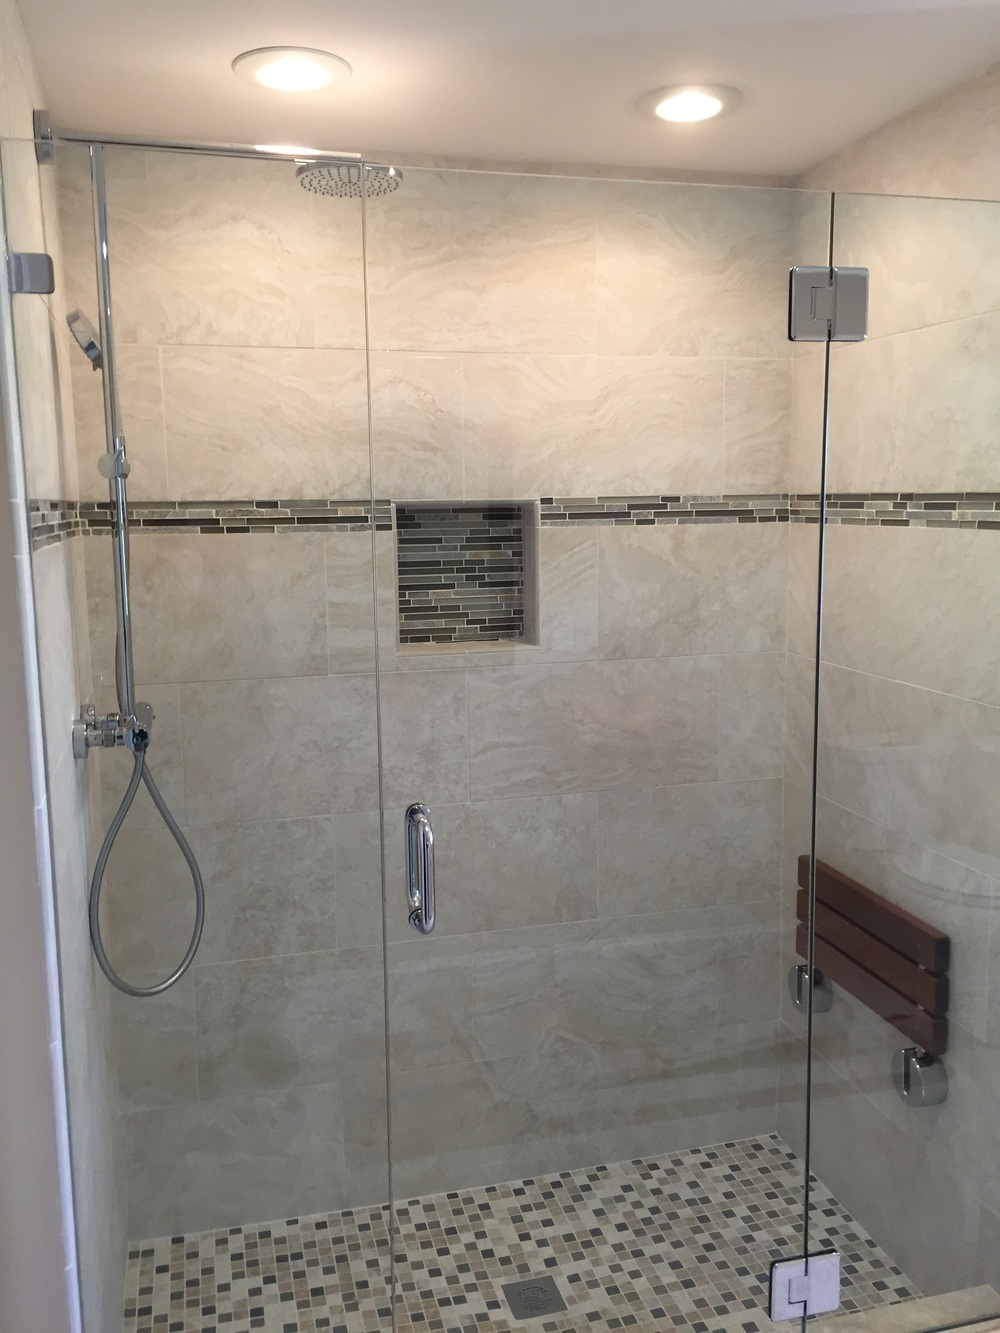 Tiled Shower in Master Bathroom Renovation in East Lyme CT | Shaw Remodeling